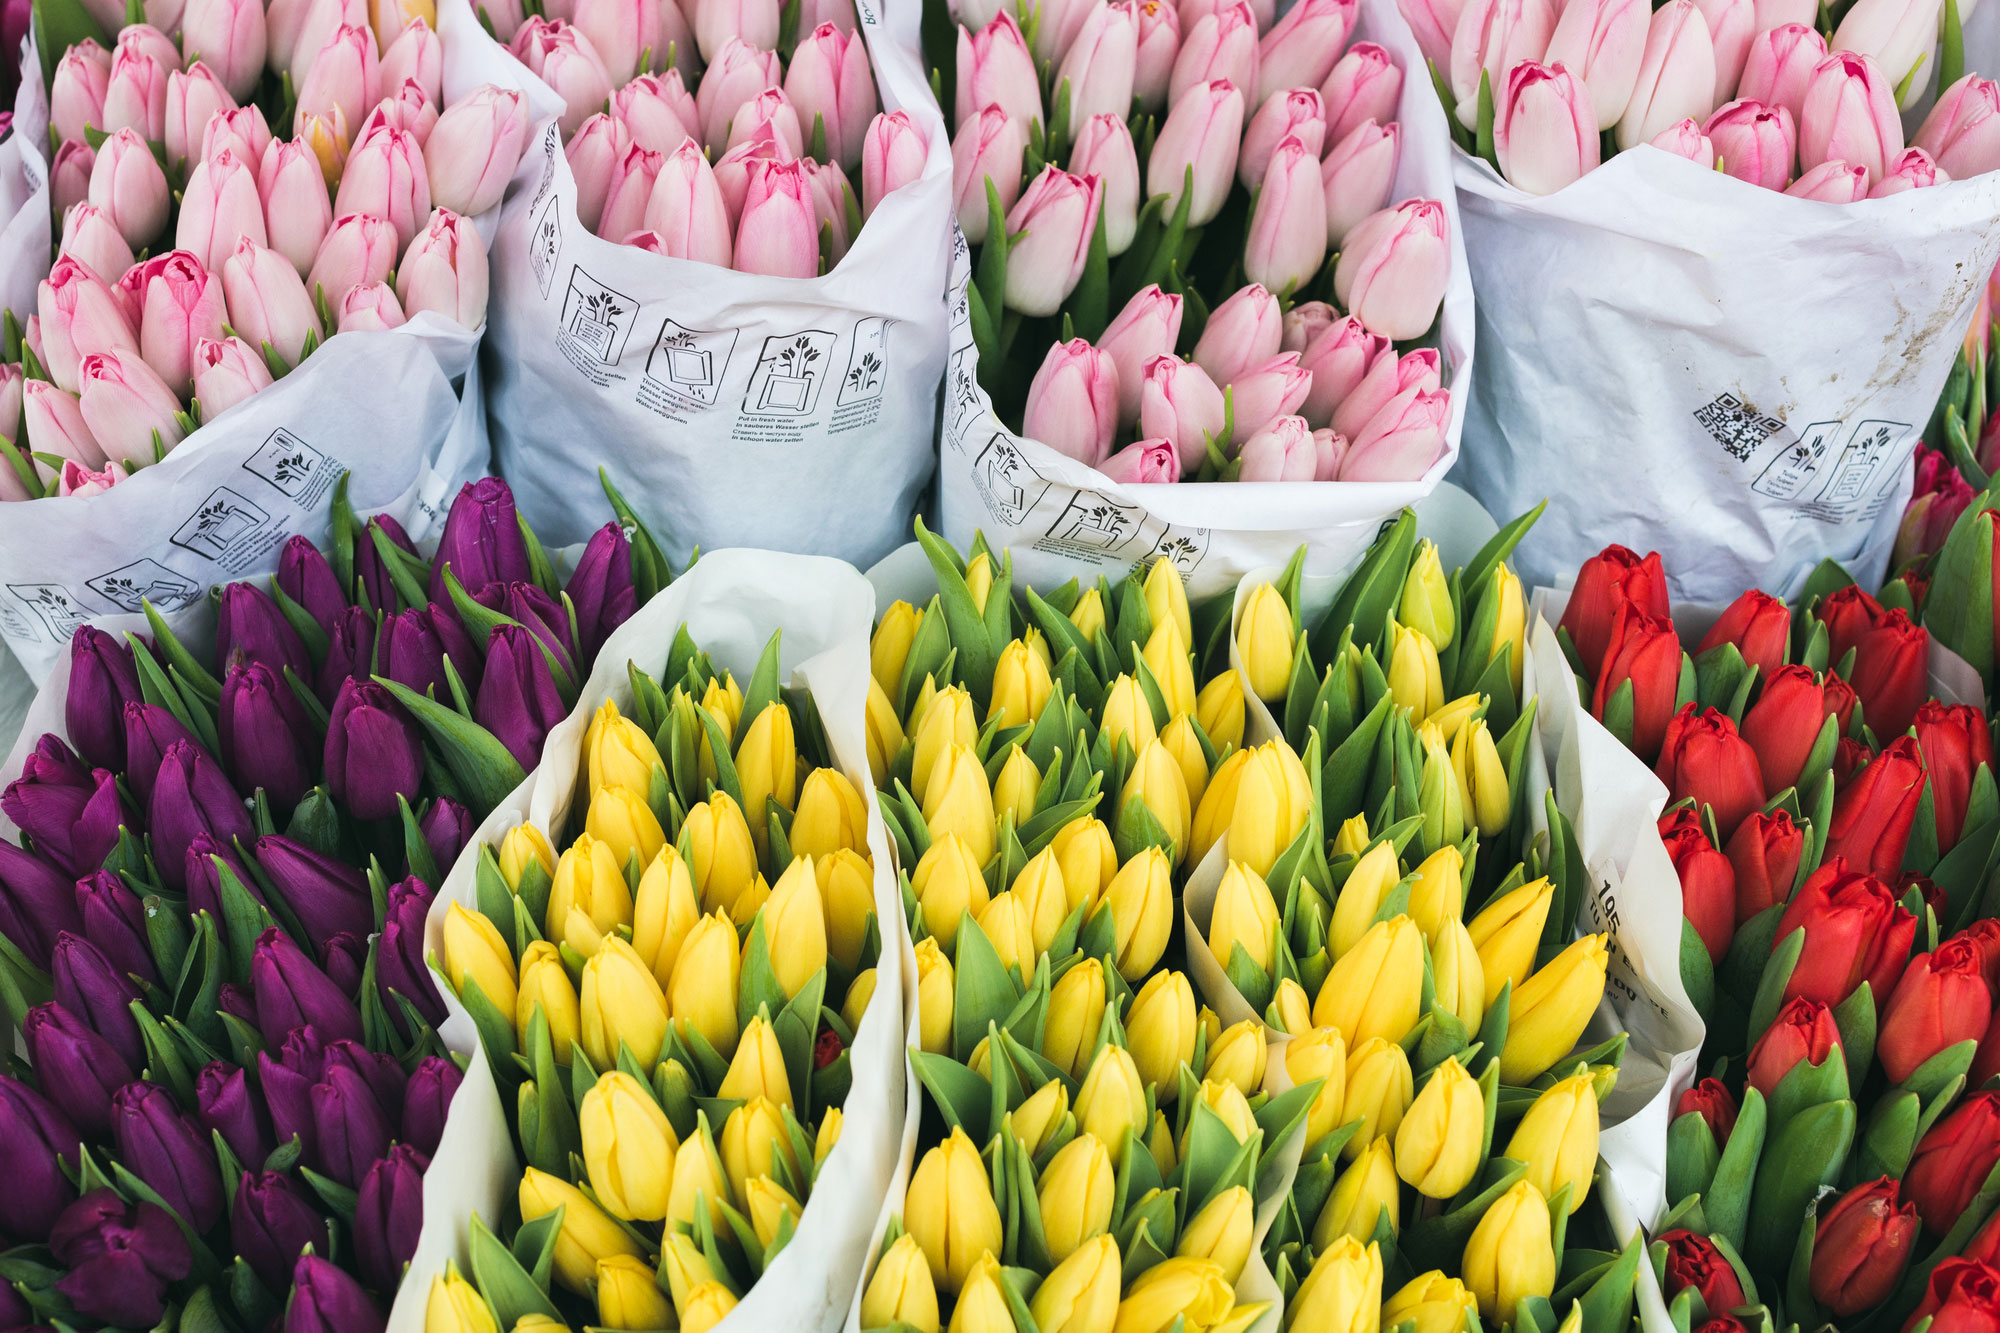 Visit the flower market at Mons for a spectacular array of spring flowers